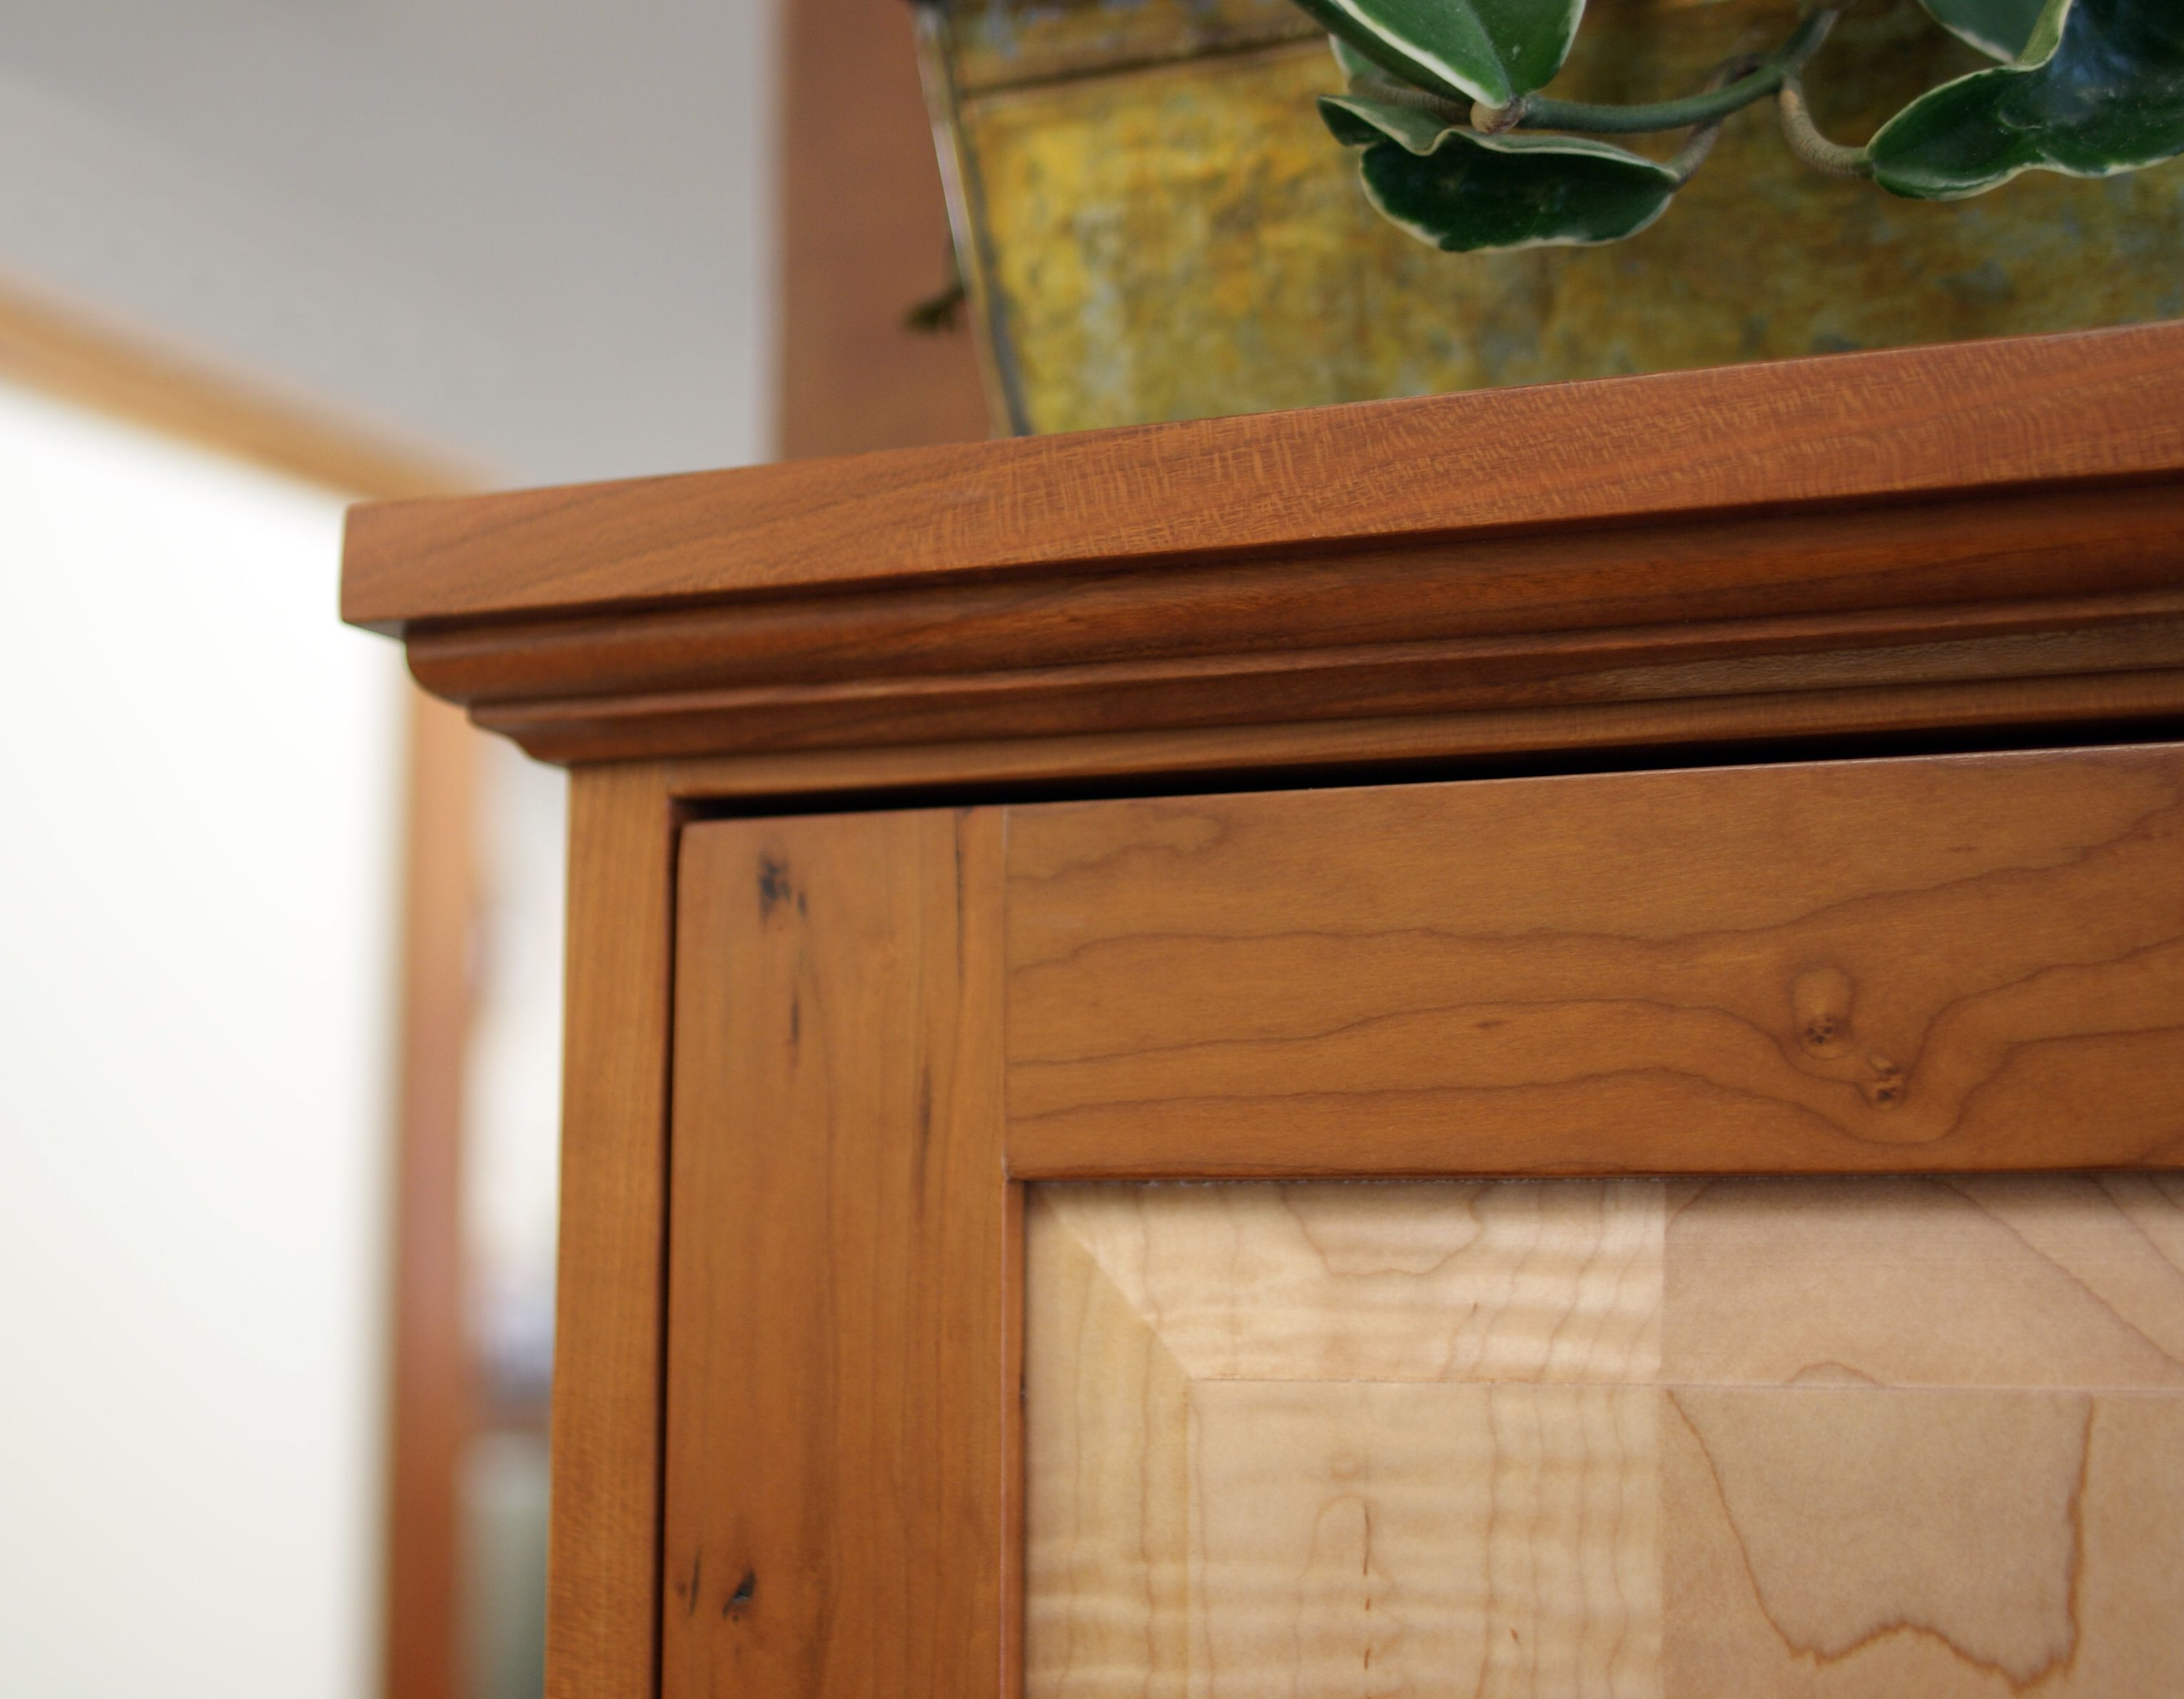 Timeless Molding Top On This Cabinet. A Curly Maple Raised Panel Is Fitted  A With